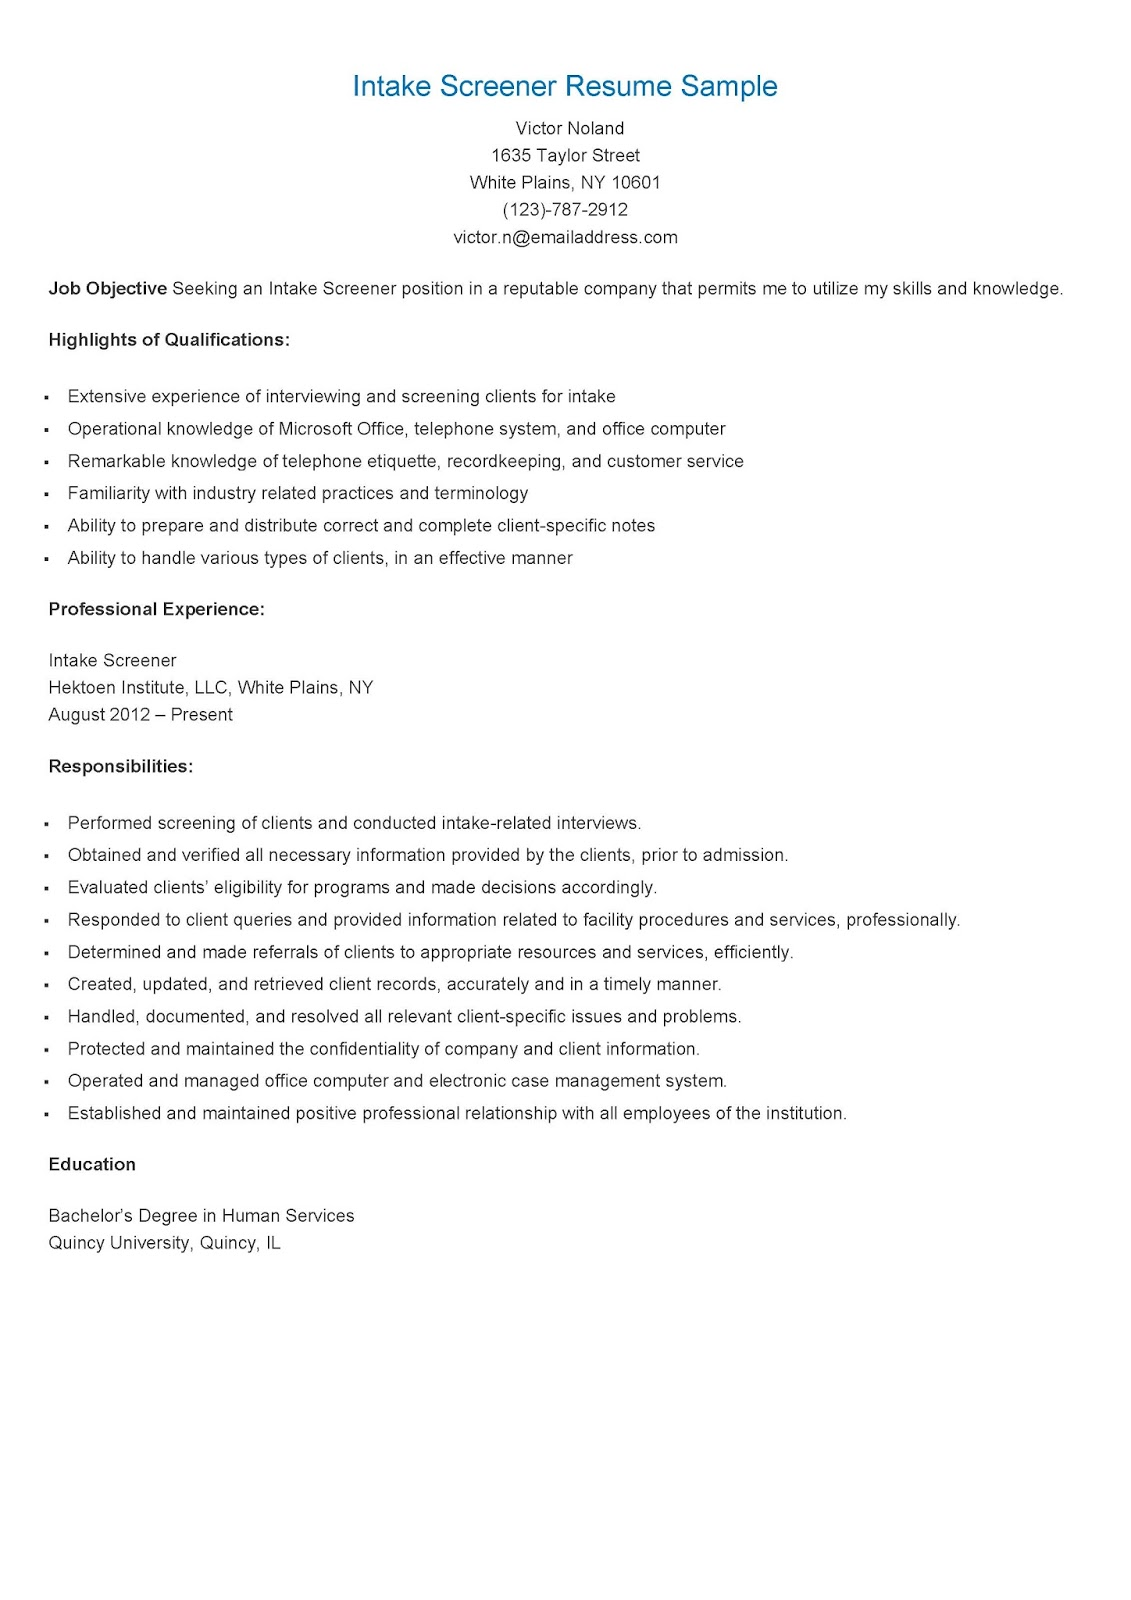 Aml Resume Format Resume Samples Intake Screener Resume Sample